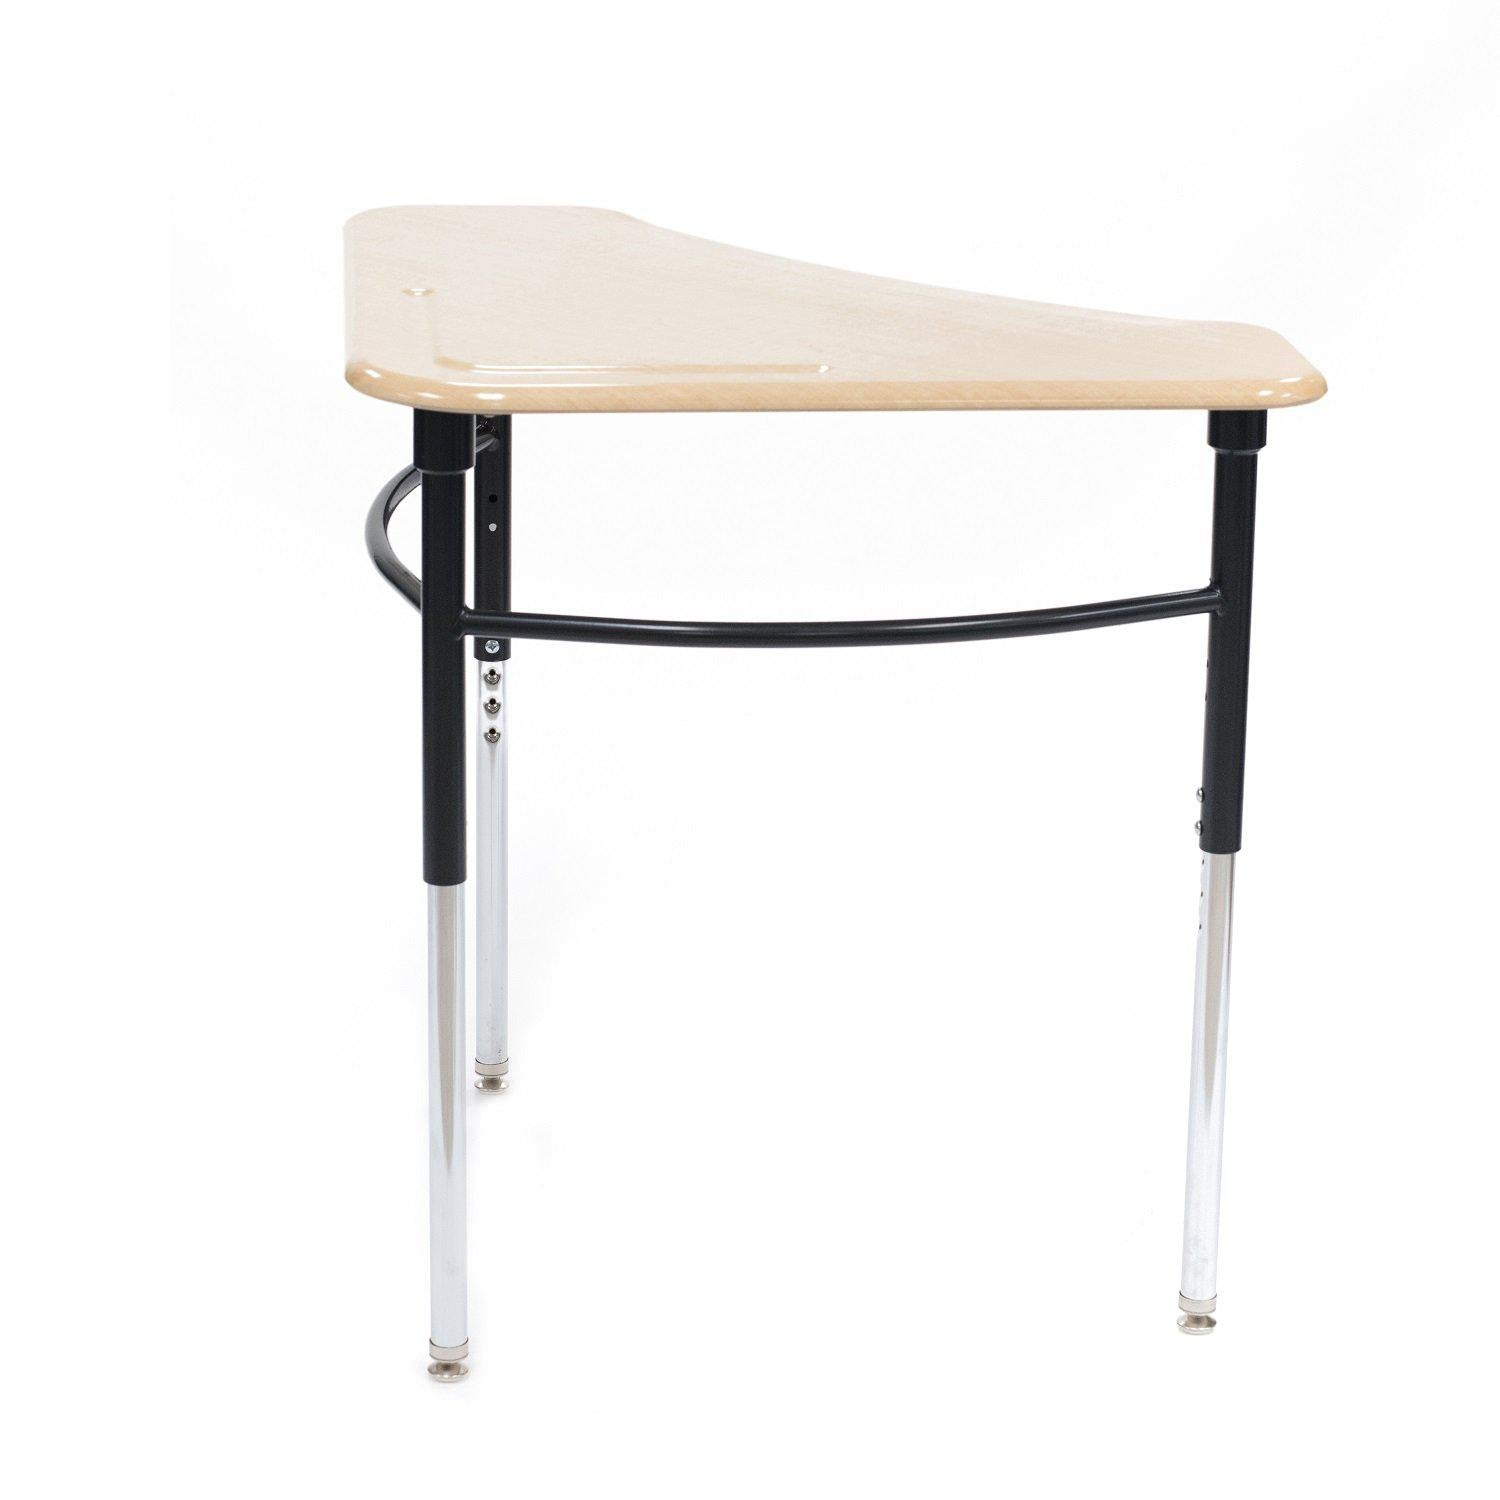 Kaleidoscope Collaborative Learning  Adjustable Height Triangle Desk with Solid Plastic Top - QUICK SHIP